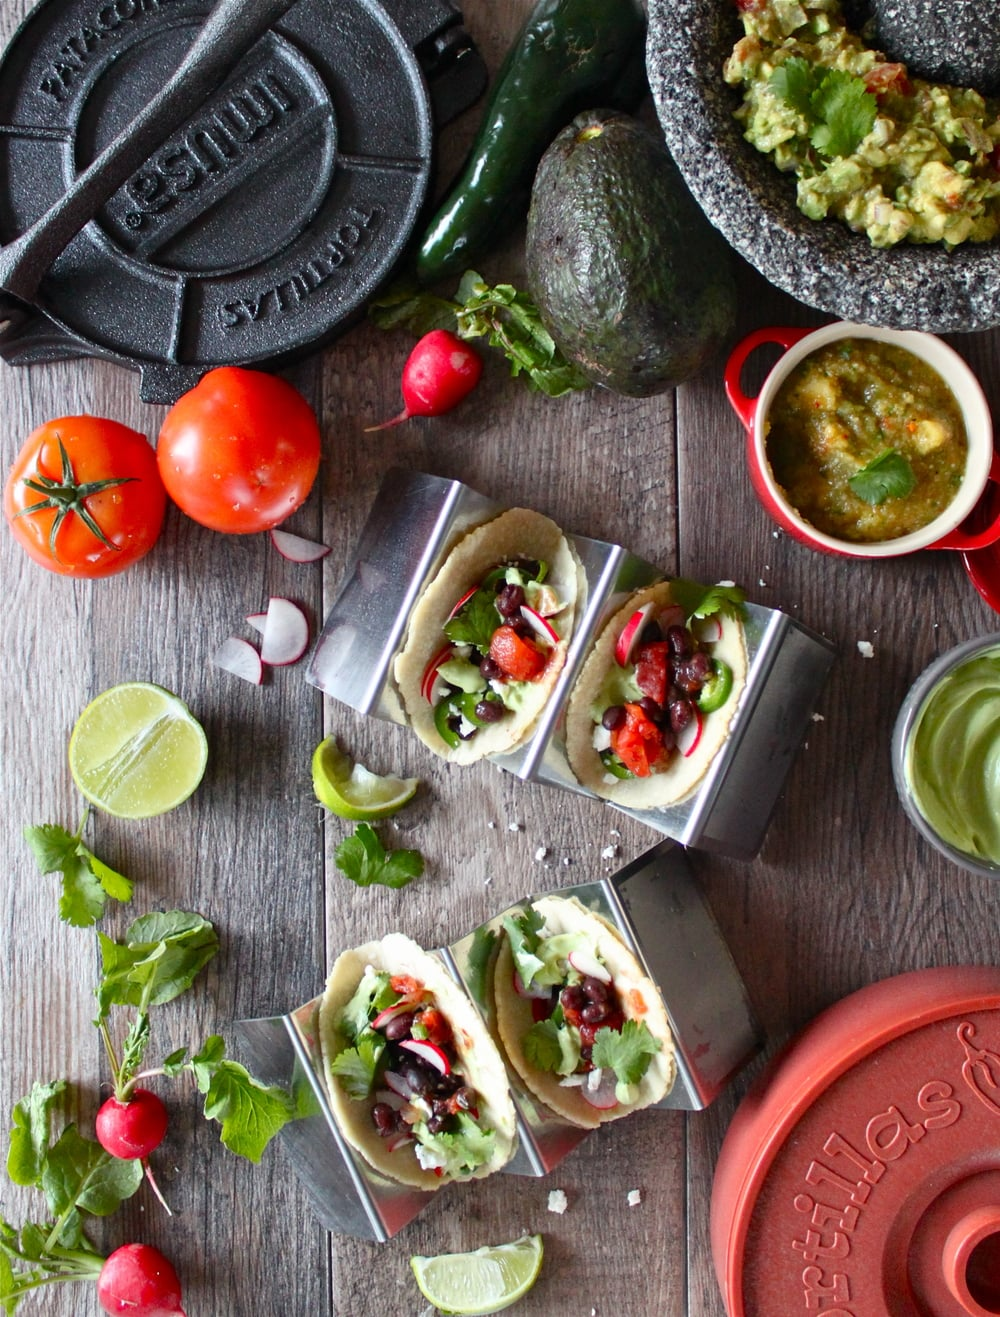 homemade tortillas and tacos_7.JPG